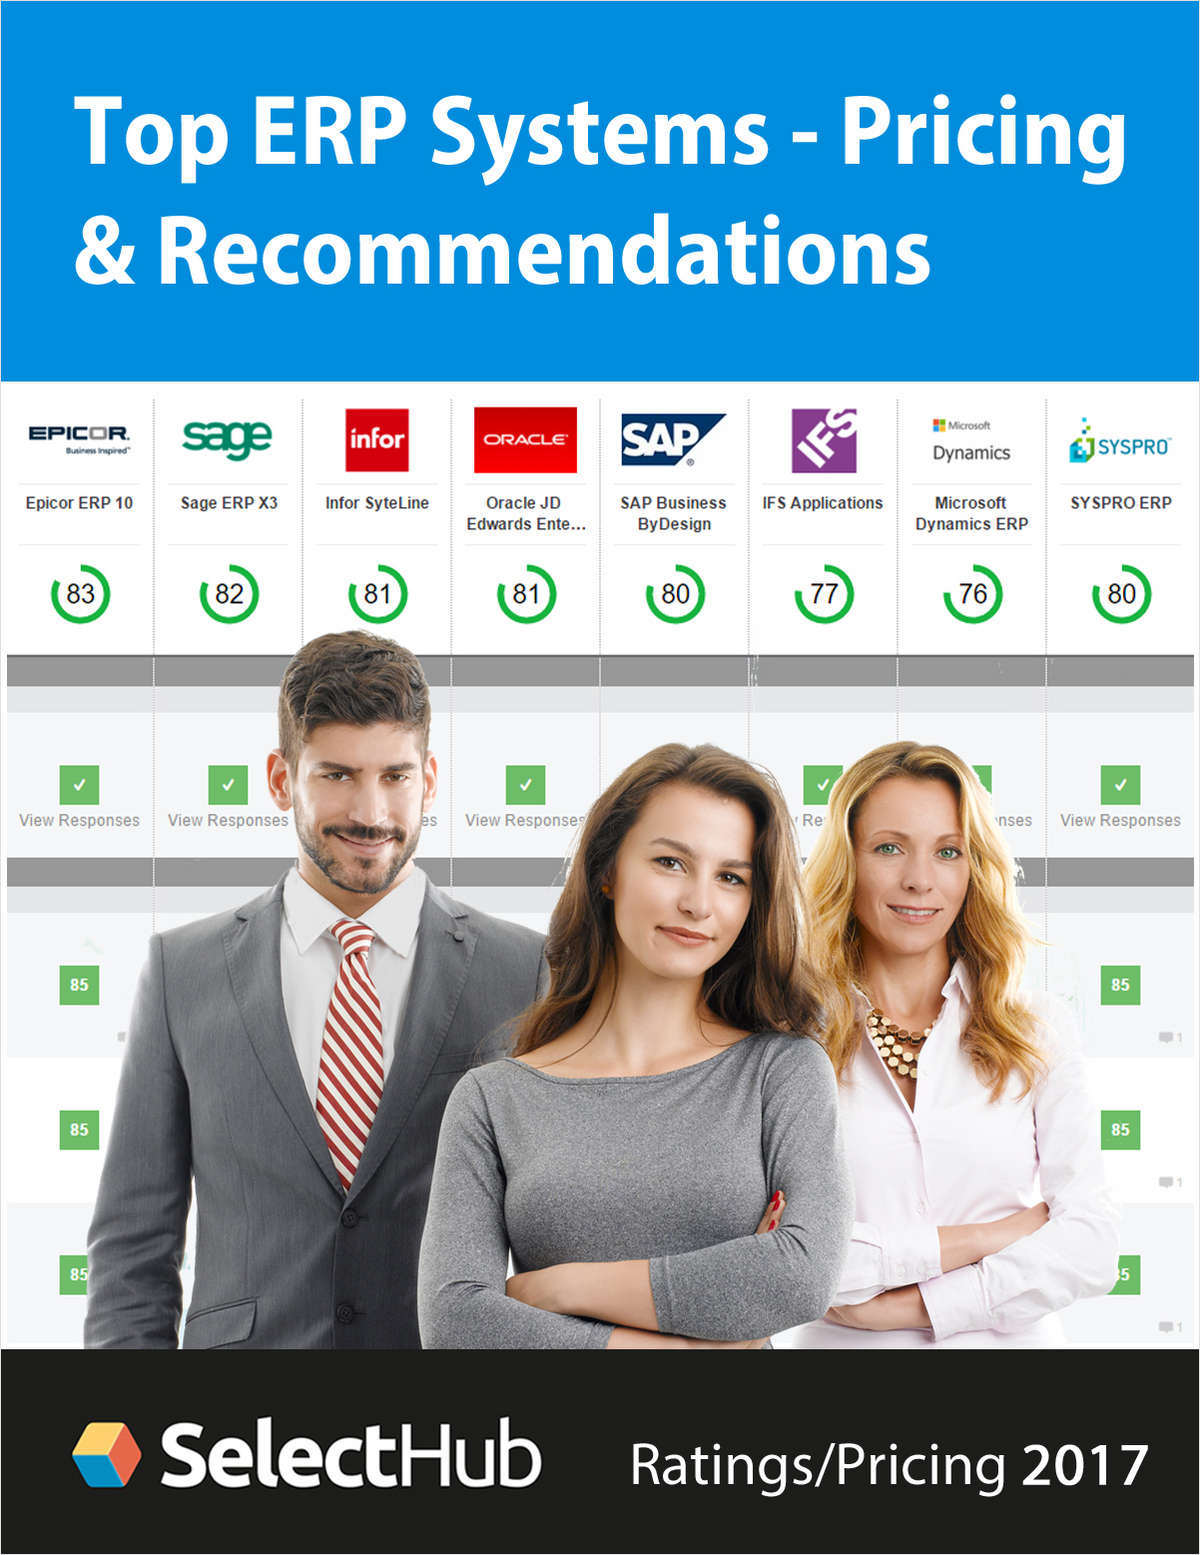 Top ERP Systems for 2017--Get Expert Ratings, Recommendations and Price Comparisons